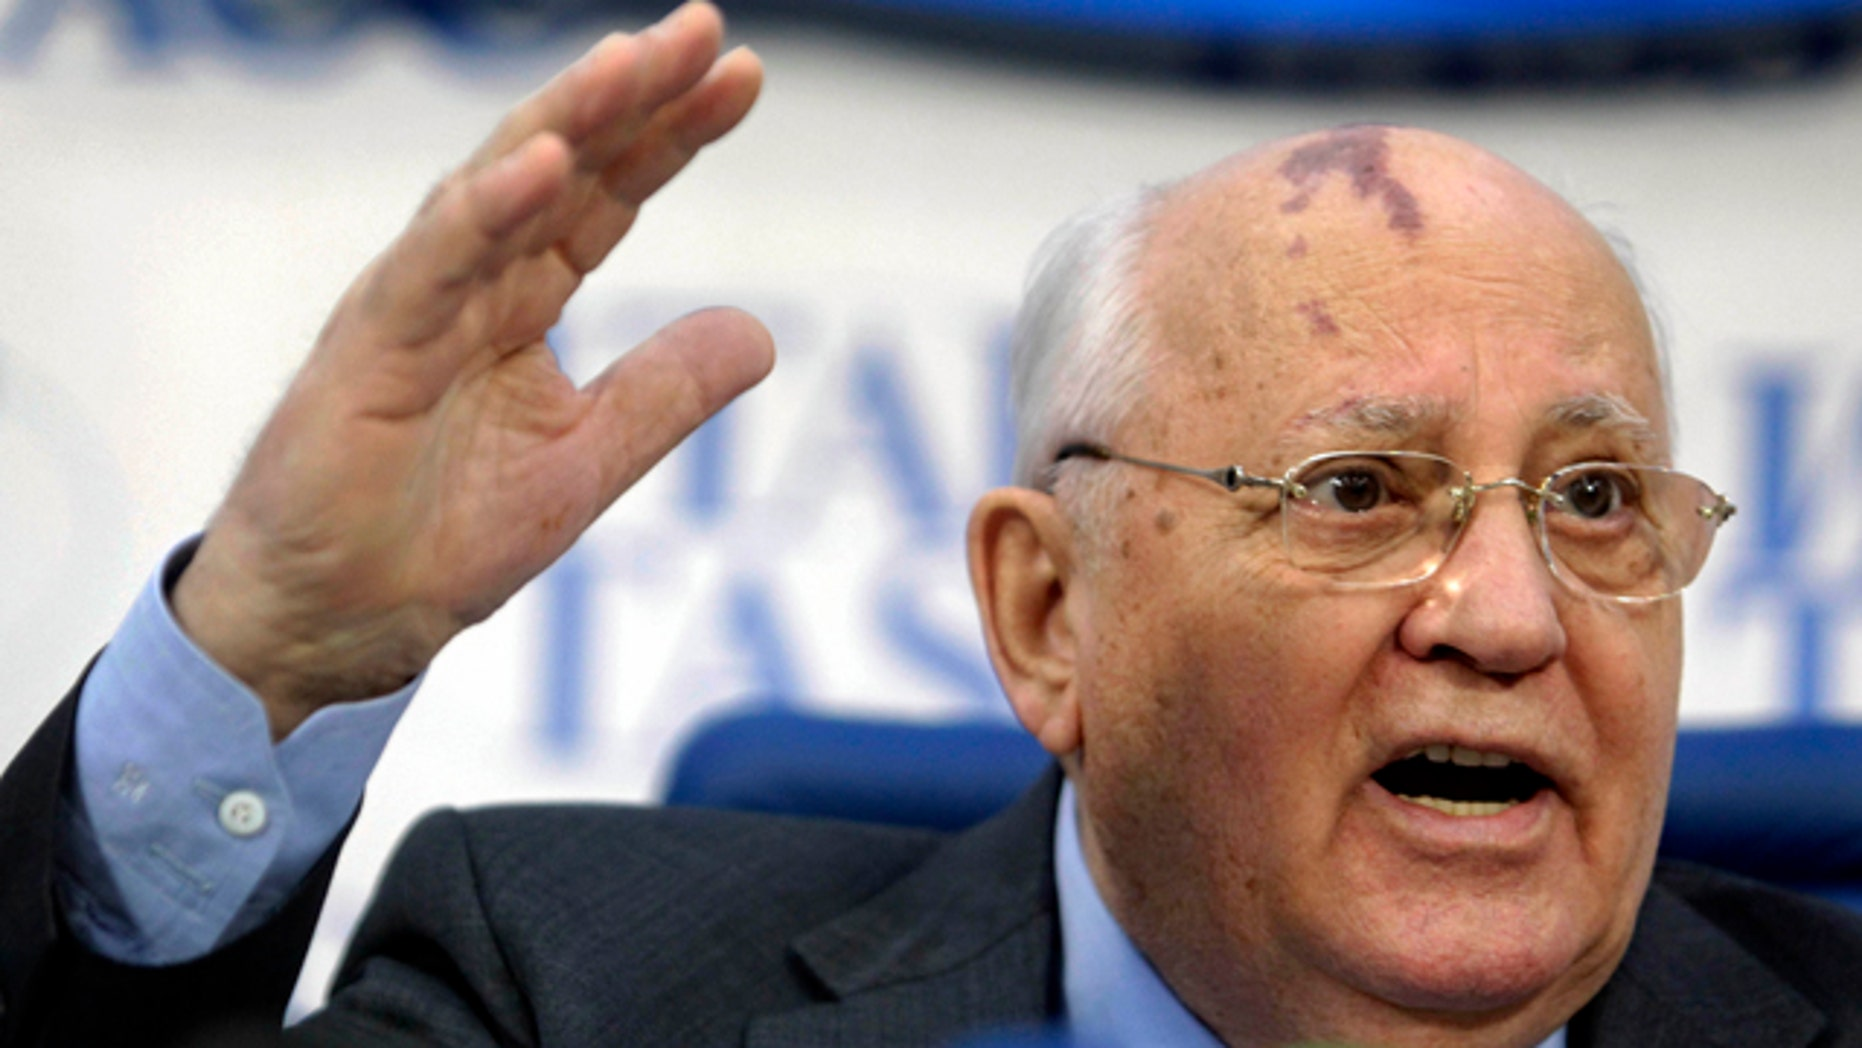 Feb. 21, 2011: Former Soviet leader Mikhail Gorbachev speaks during a news conference in Moscow. (AP)